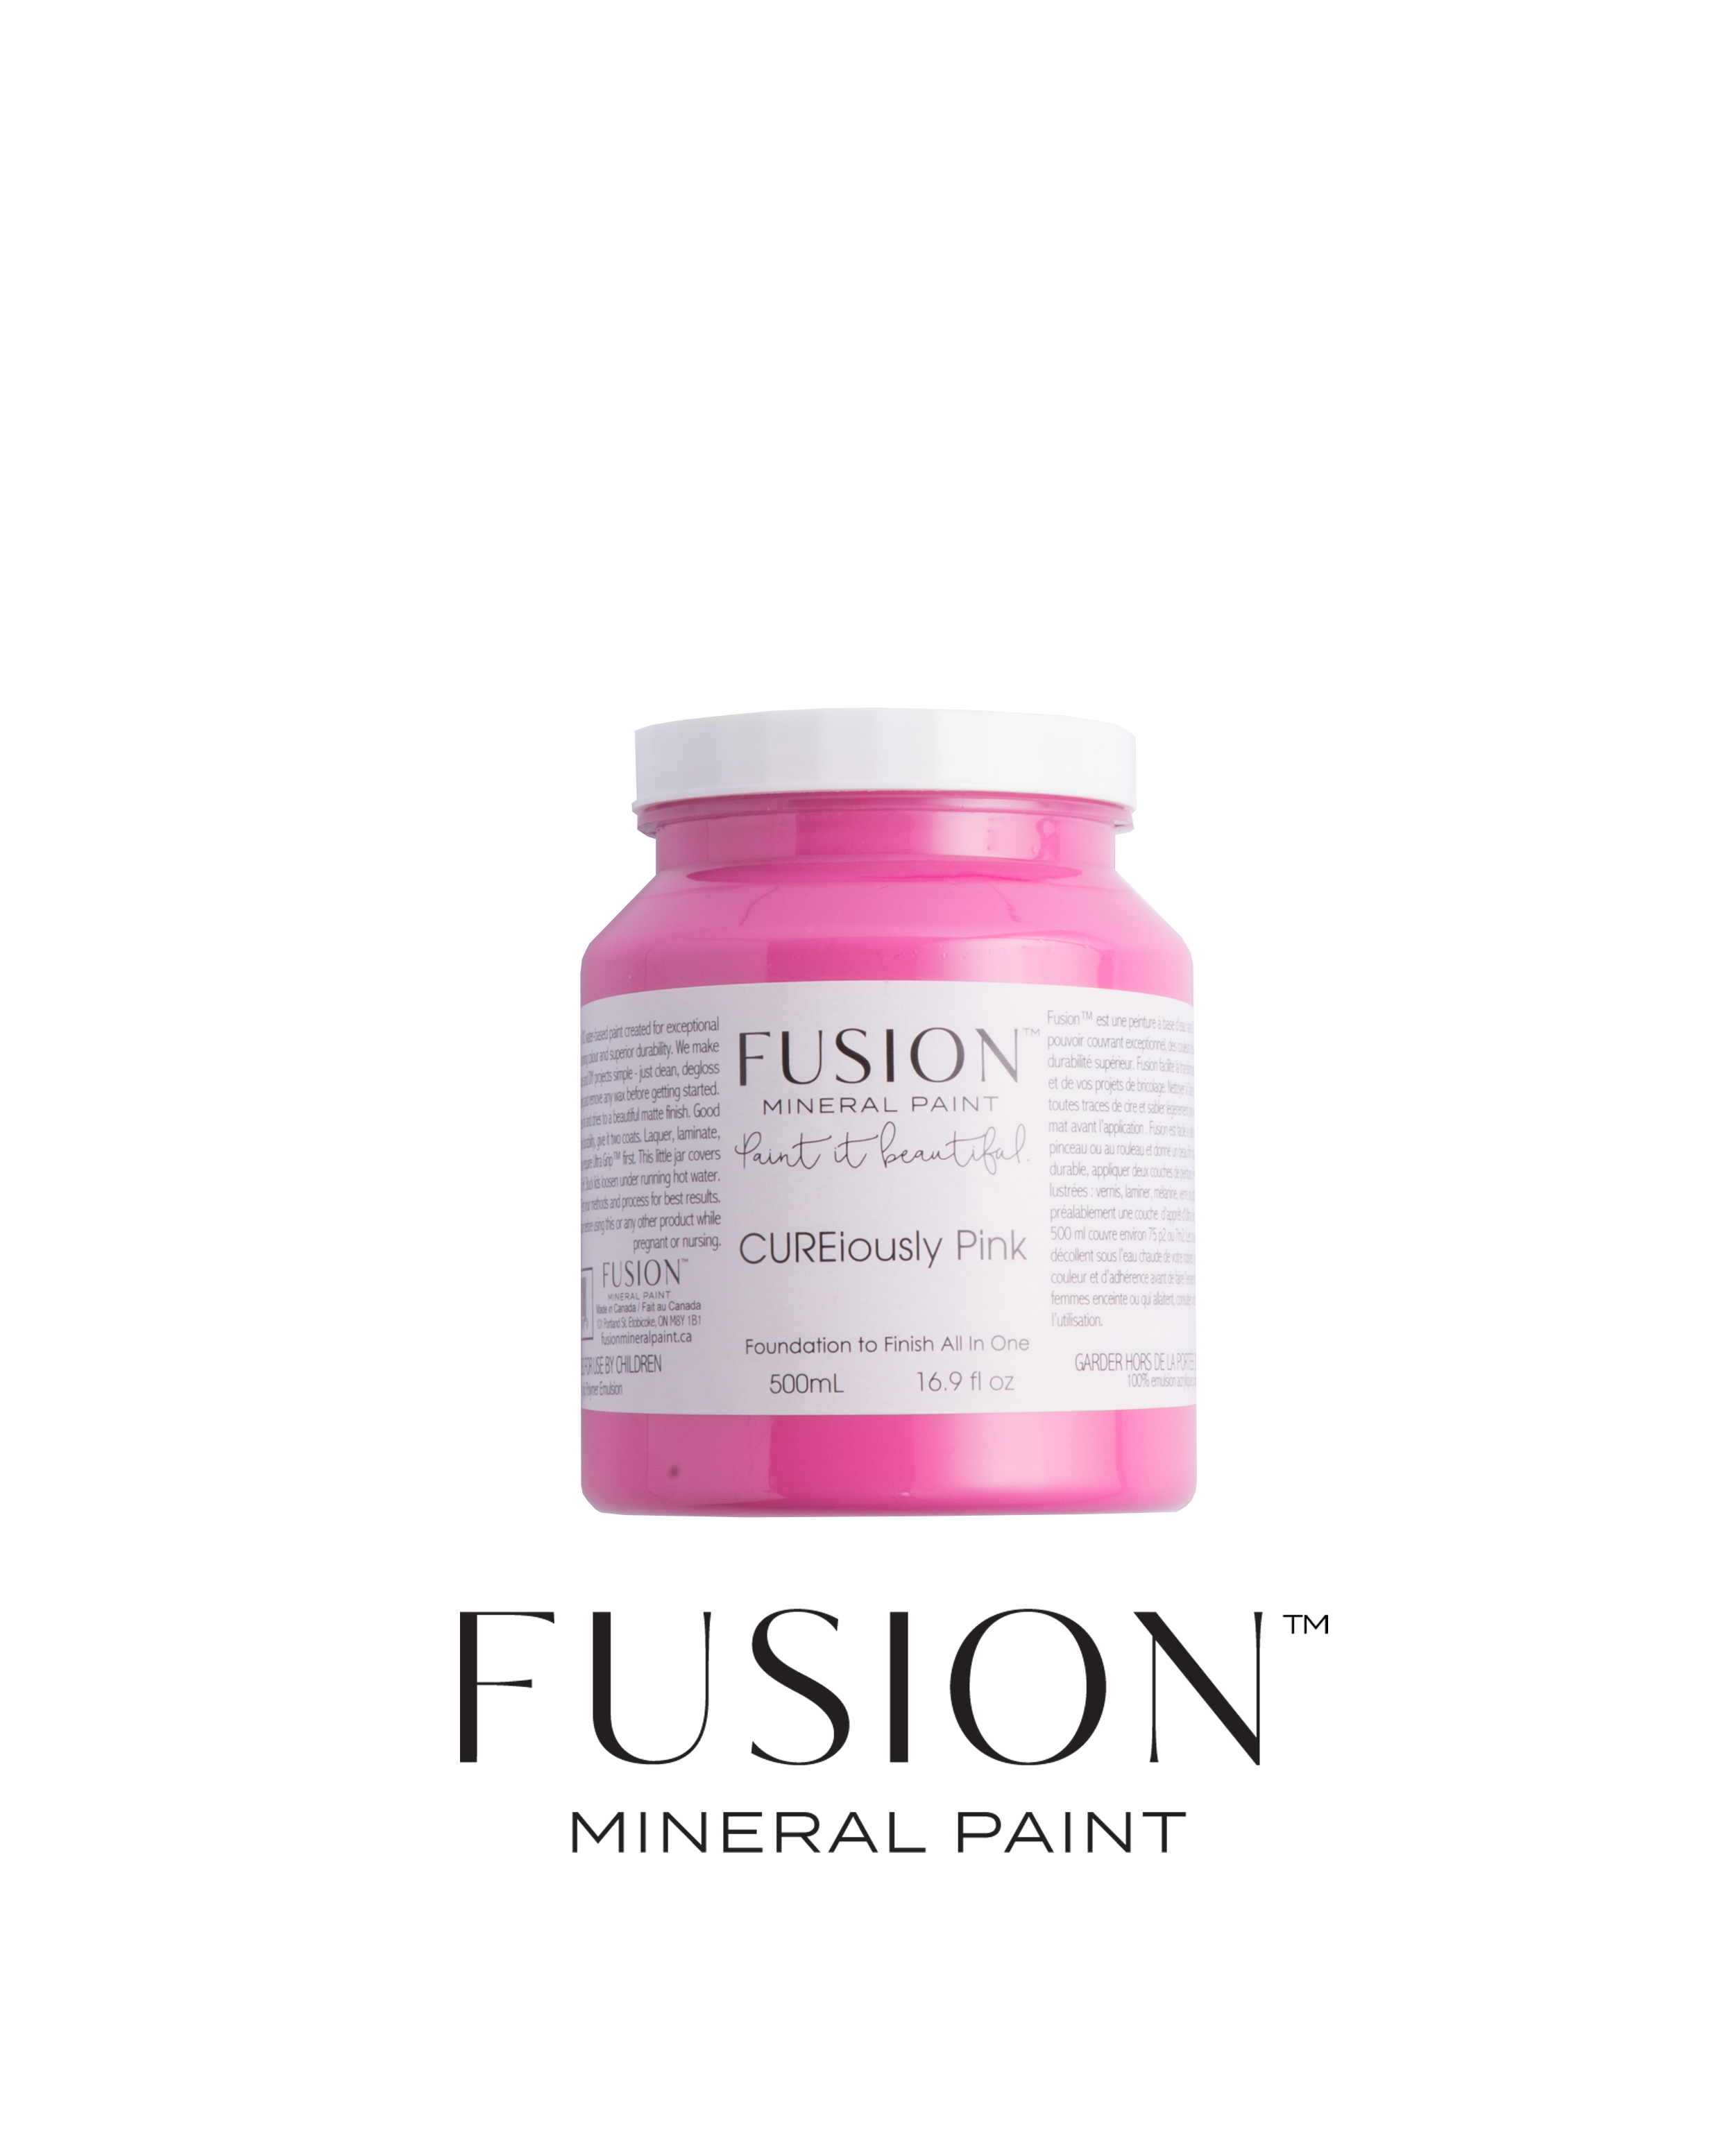 CUREiosly Pink Fusion Mineral Paint